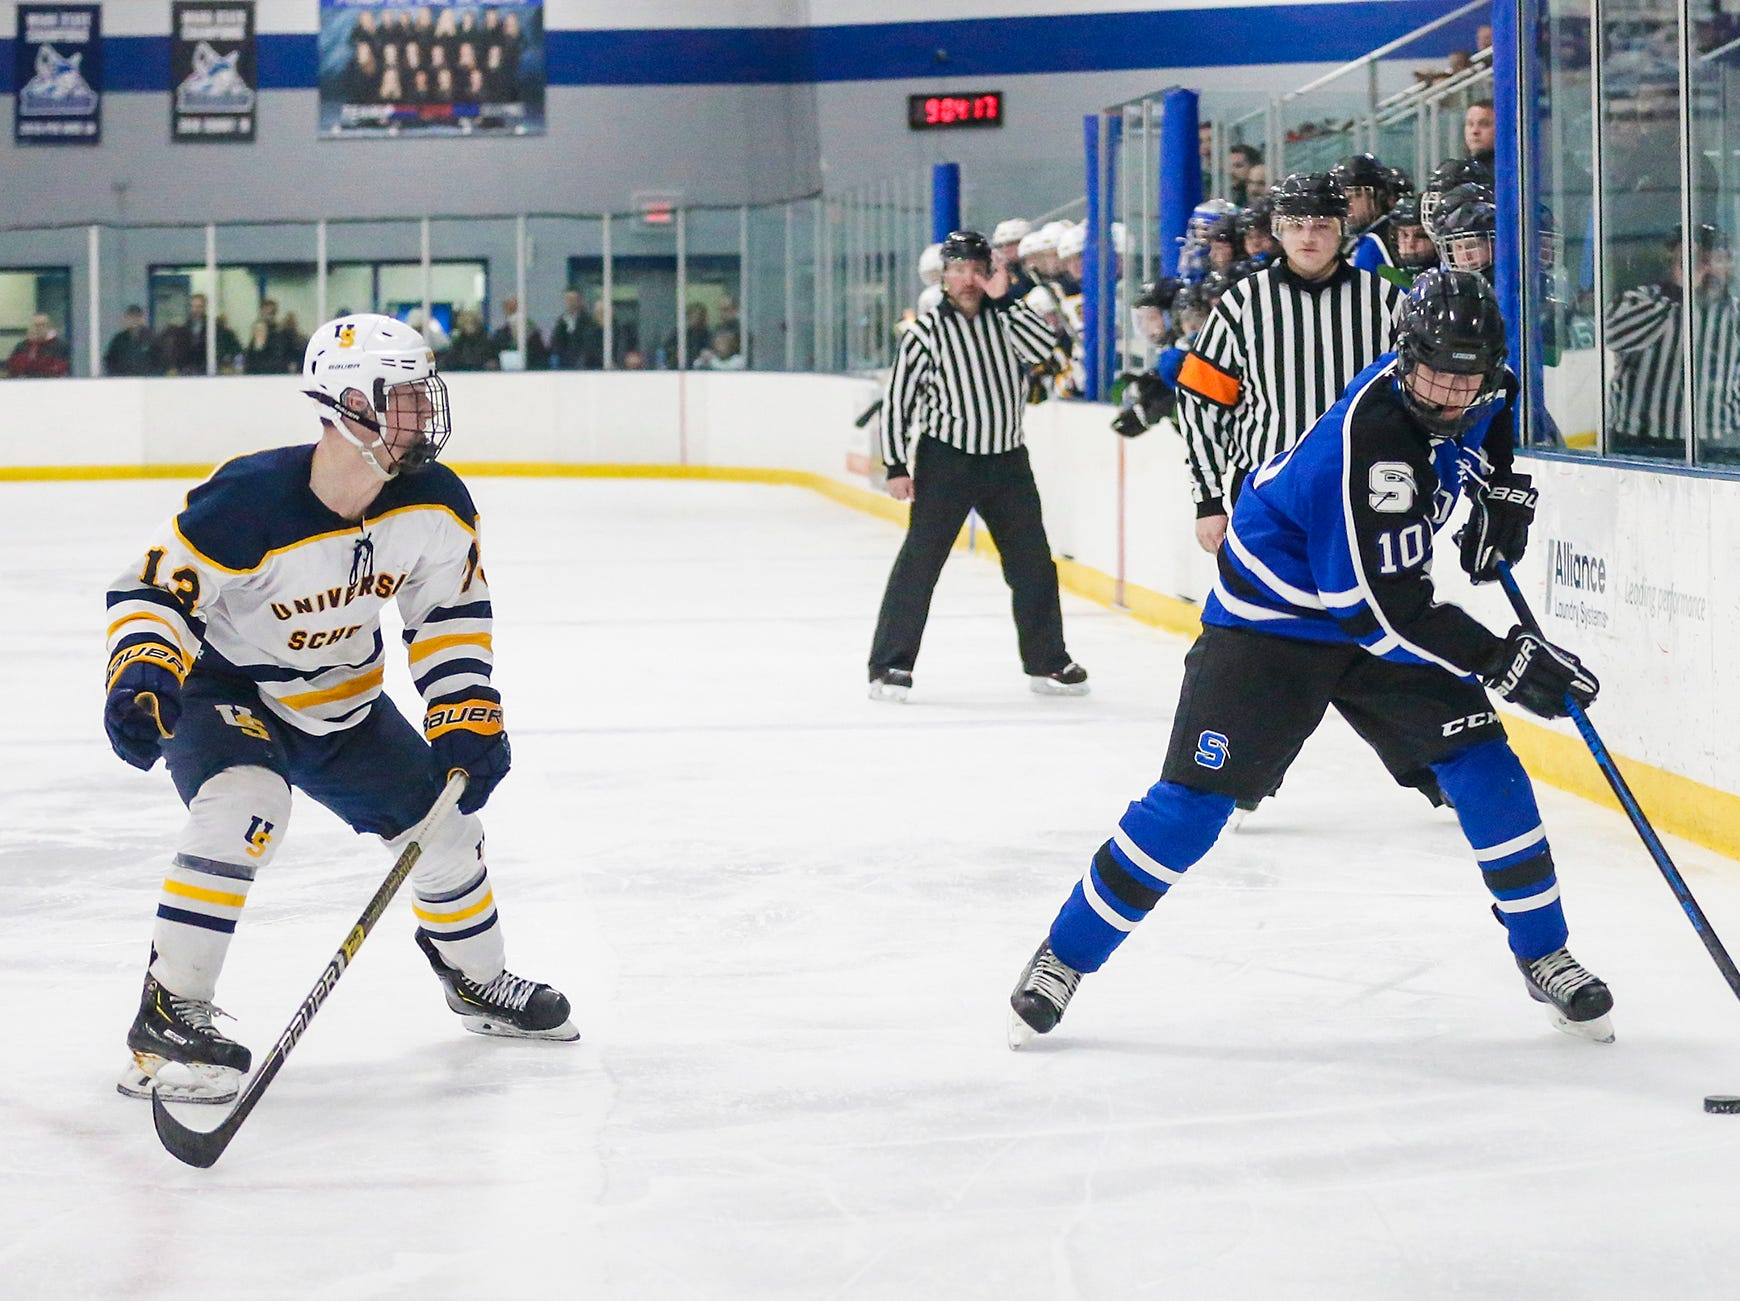 St. Mary's Springs boys co-op hockey's Dayne Deanovich (10) moves the puck against University School of Milwaukee's Robby Newton (13) Friday, February 22, 2019 during their WIAA sectional final game in Fond du Lac. University School won the game 6-1 and will advance to state. Doug Raflik/USA TODAY NETWORK-Wisconsin